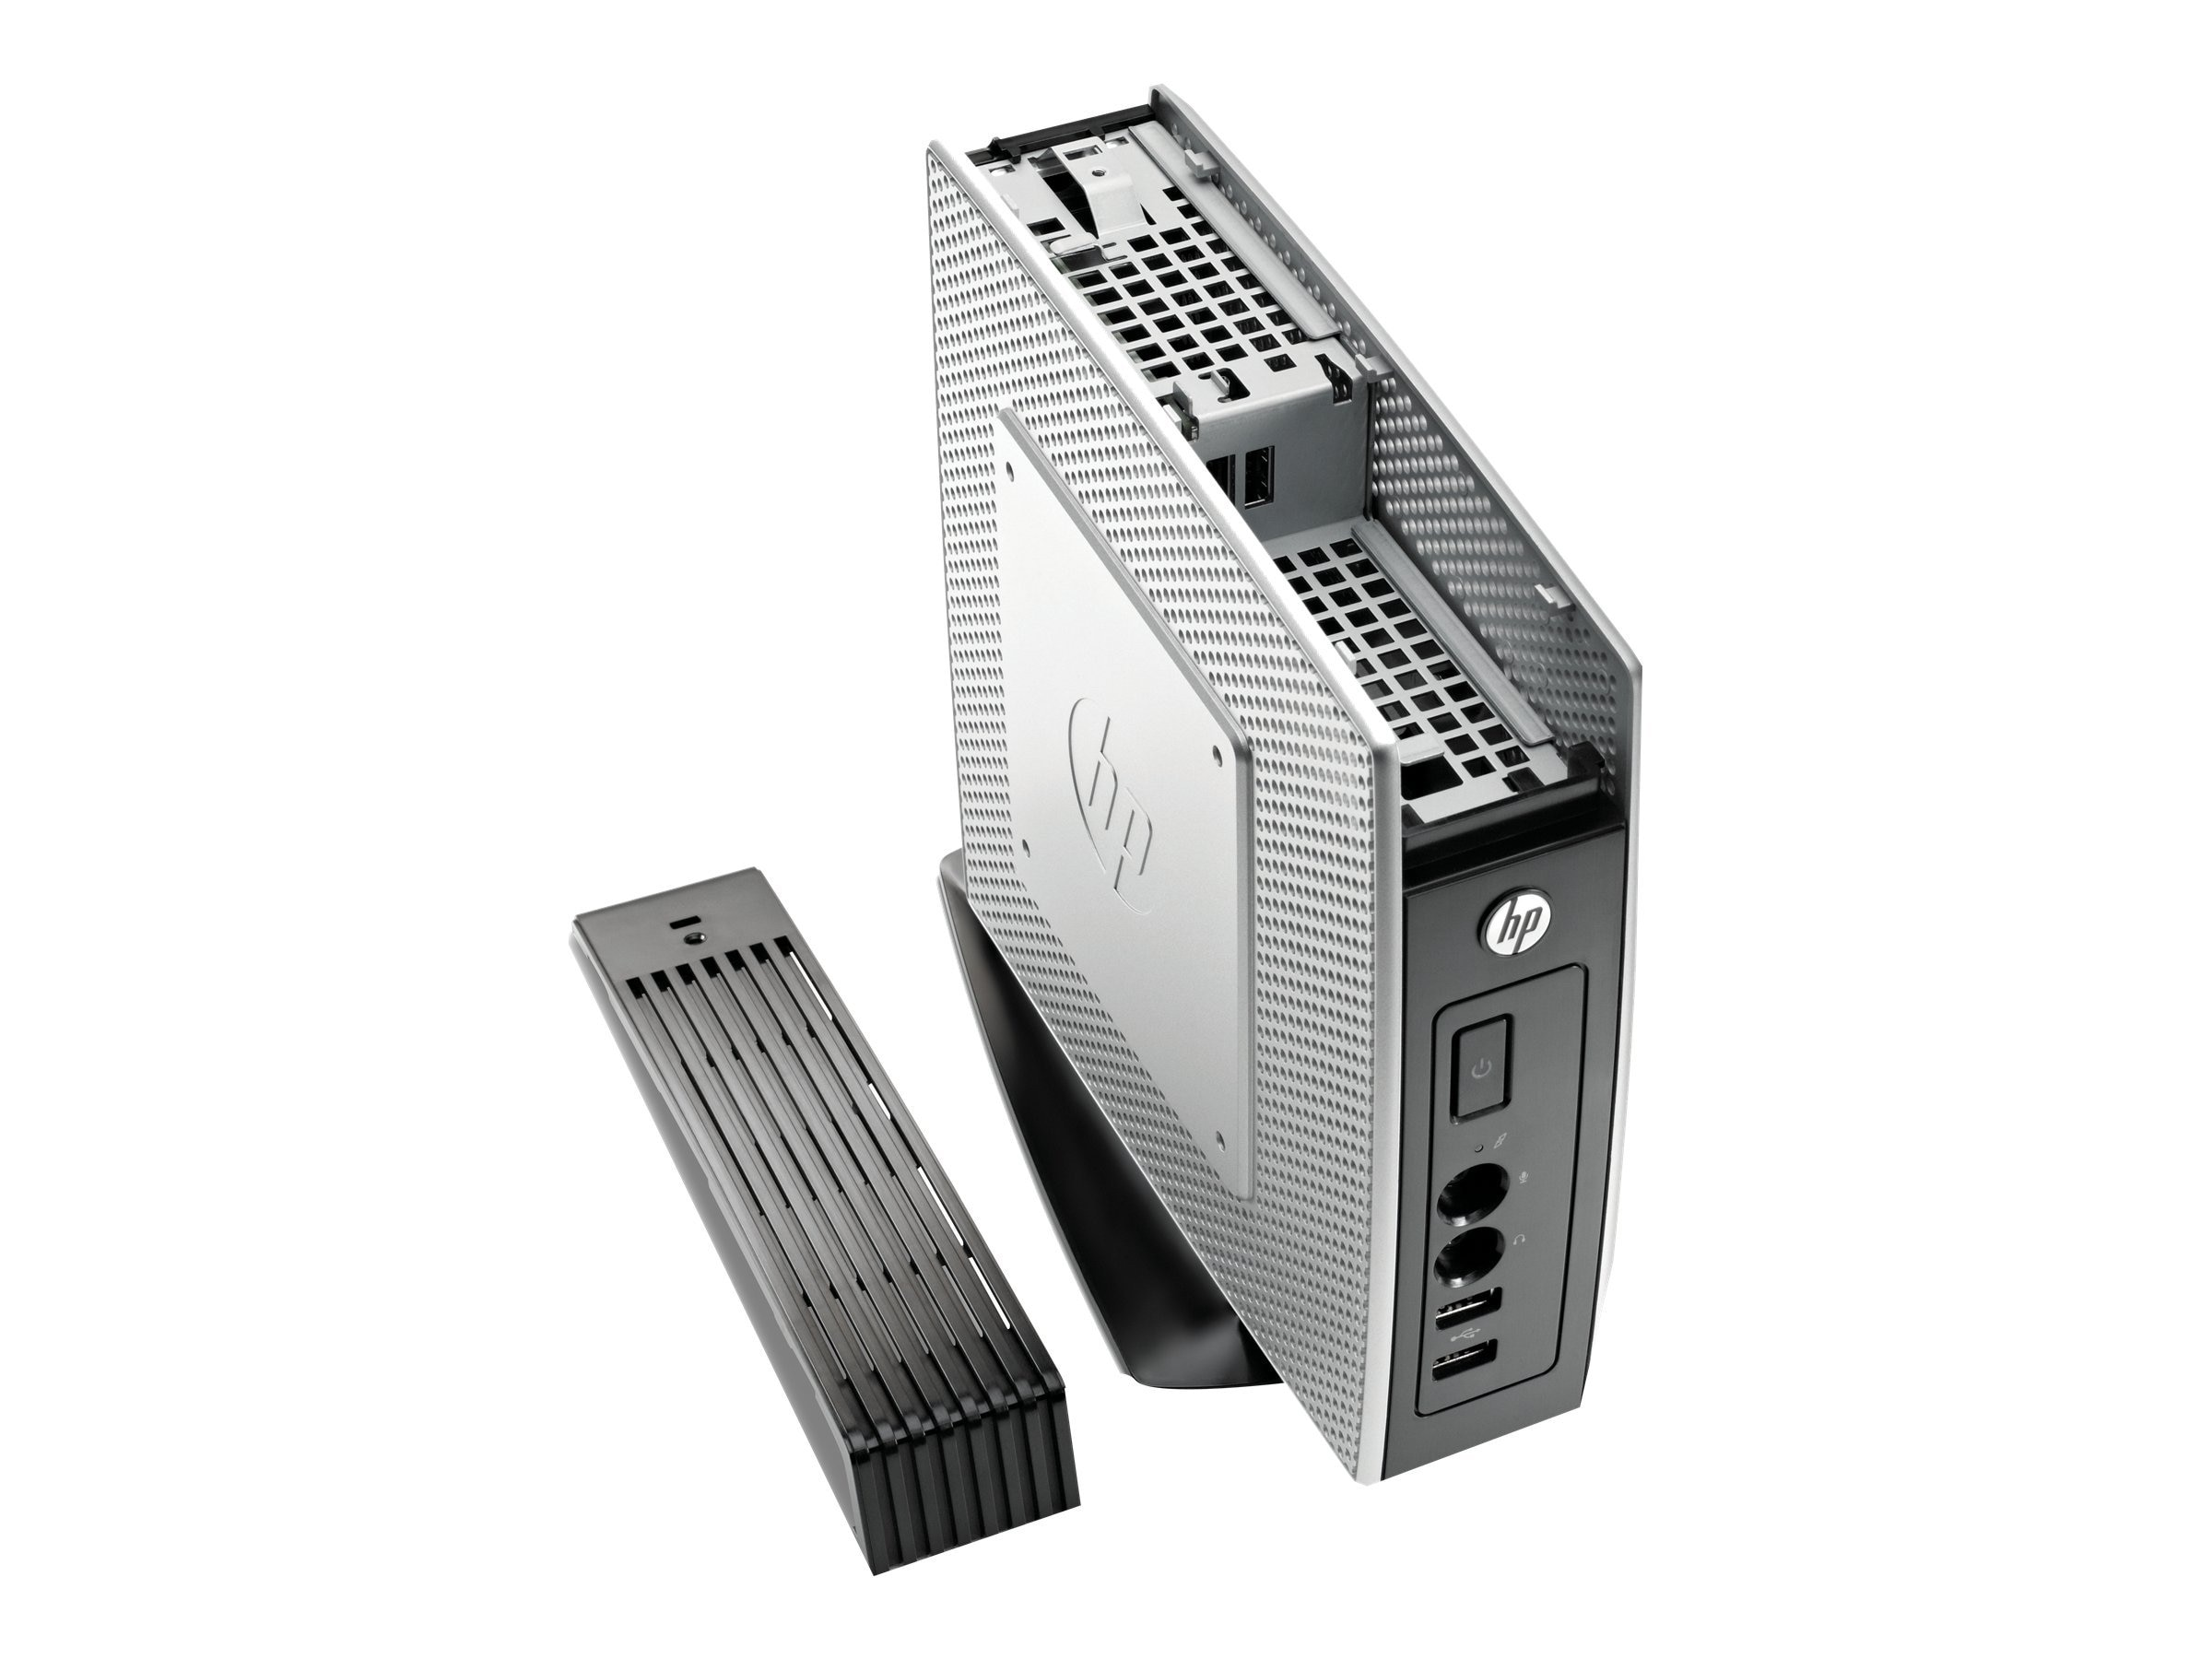 HP t5570 Thin Client VIA Nano U3500 1.0GHz 2GB RAM 2GB Flash GNIC abgn WES9, H1M17AA#ABA